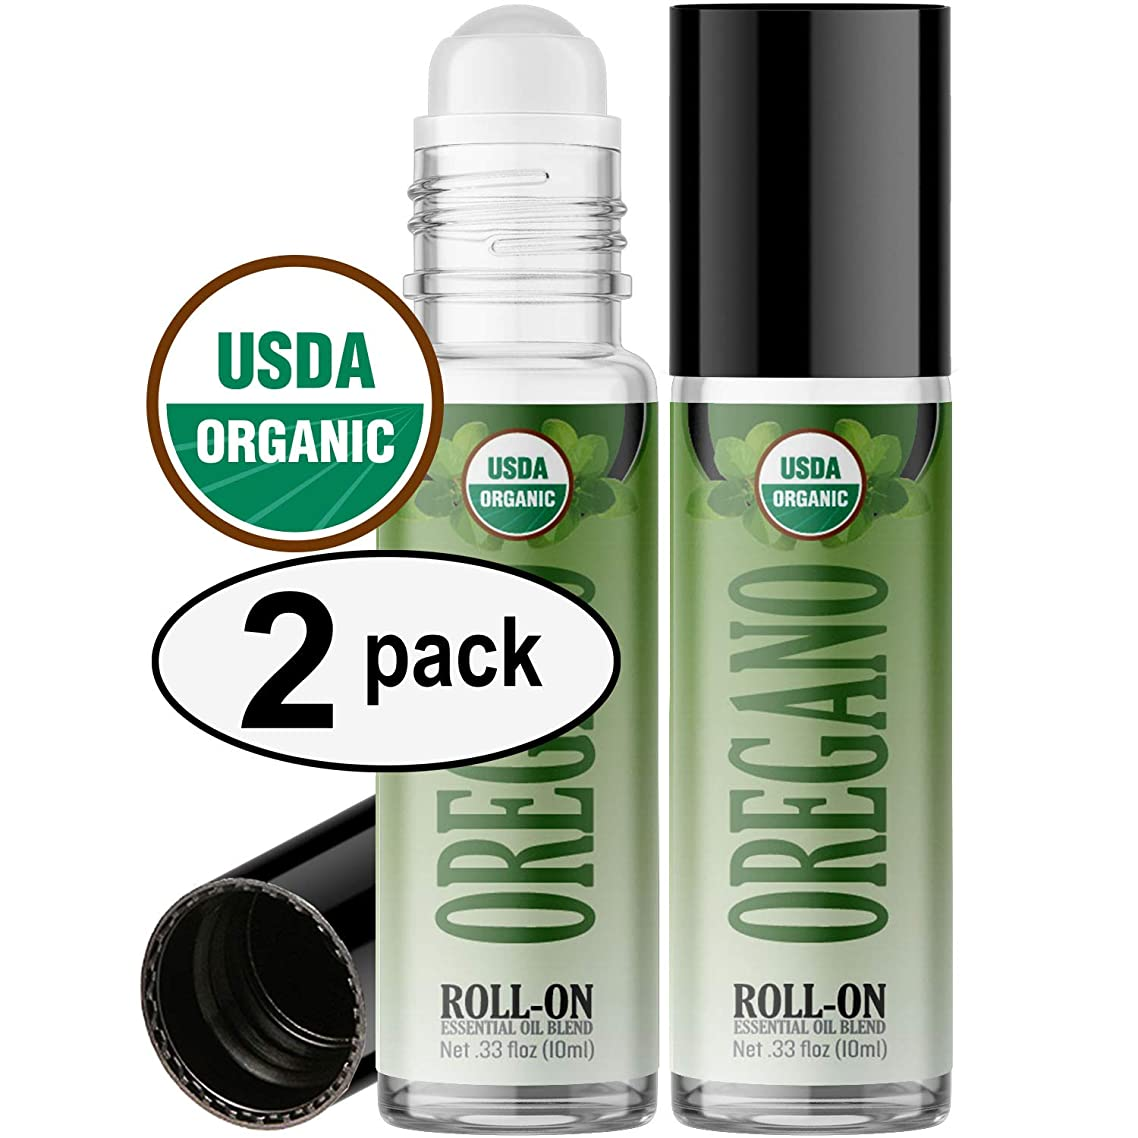 Organic Oregano Roll On Essential Oil Rollerball (2 Pack - USDA Certified Organic) Pre-diluted with Glass Roller Ball for Aromatherapy, Kids, Children, Adults Topical Skin Application - 10ml Bottle